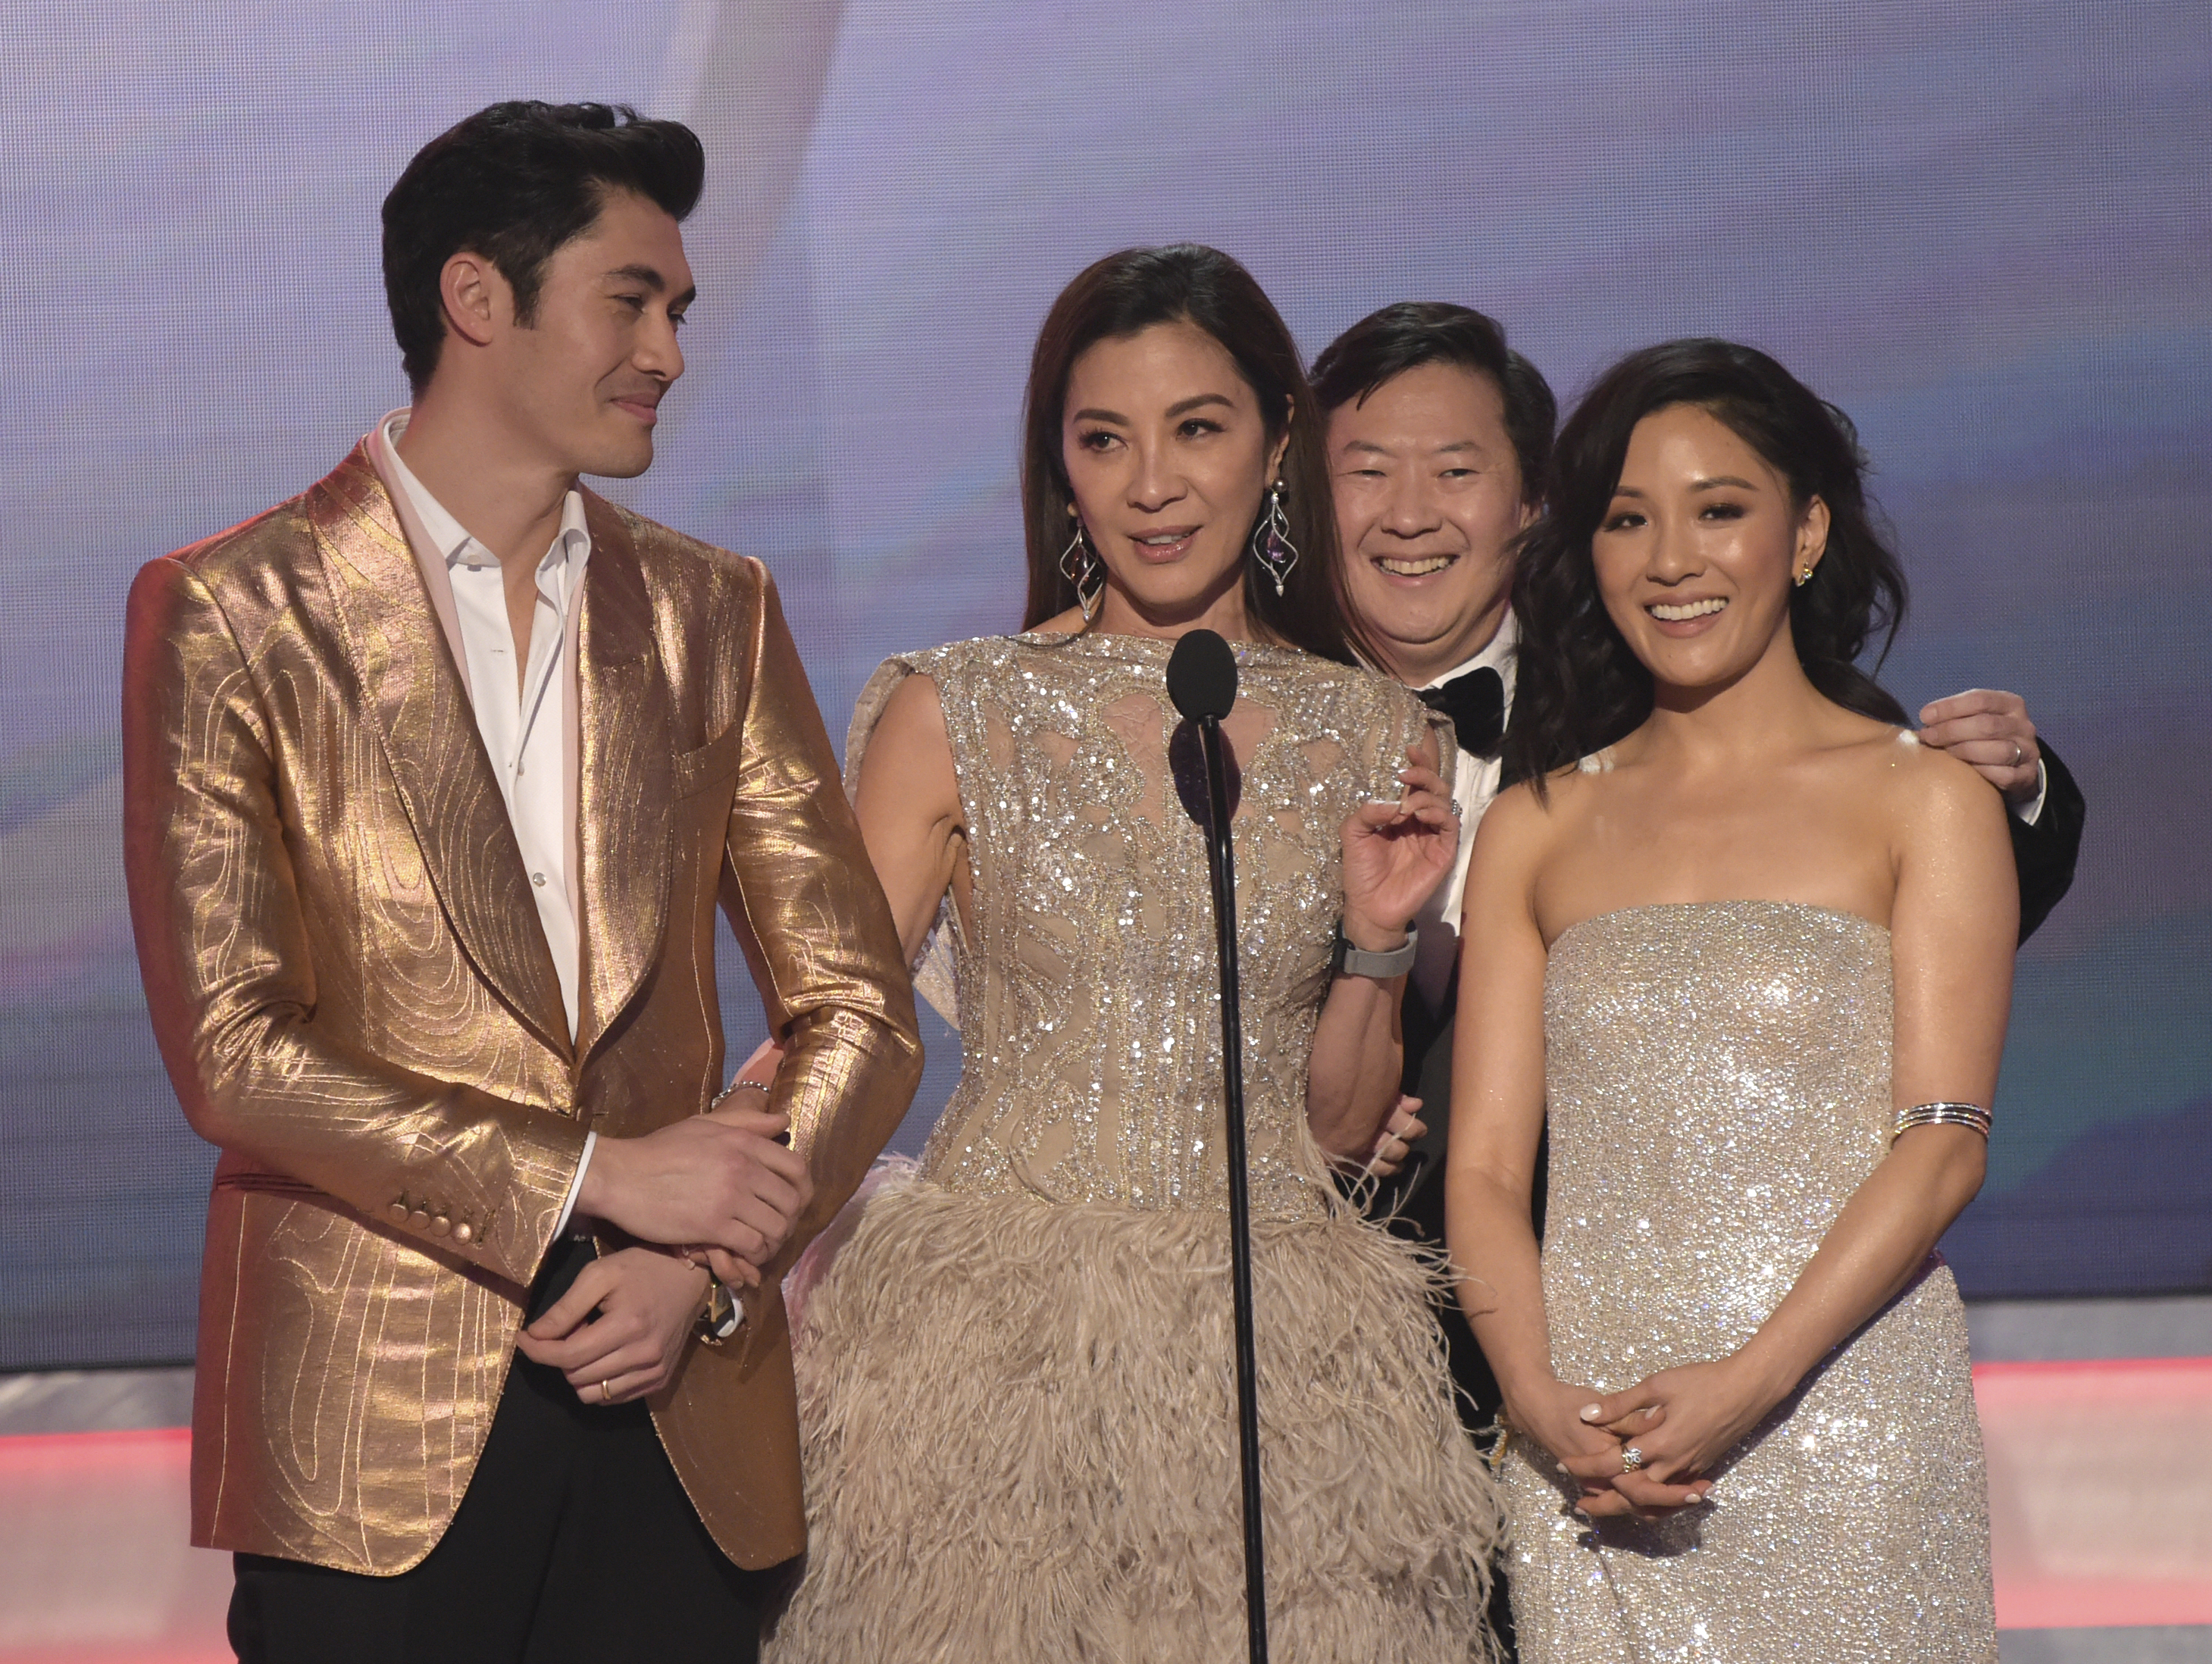 Henry Golding, from left, Michelle Yeoh, Ken Jeong and Constance Wu, nominated for outstanding performance by a cast in a motion picture, introduce a clip from their film